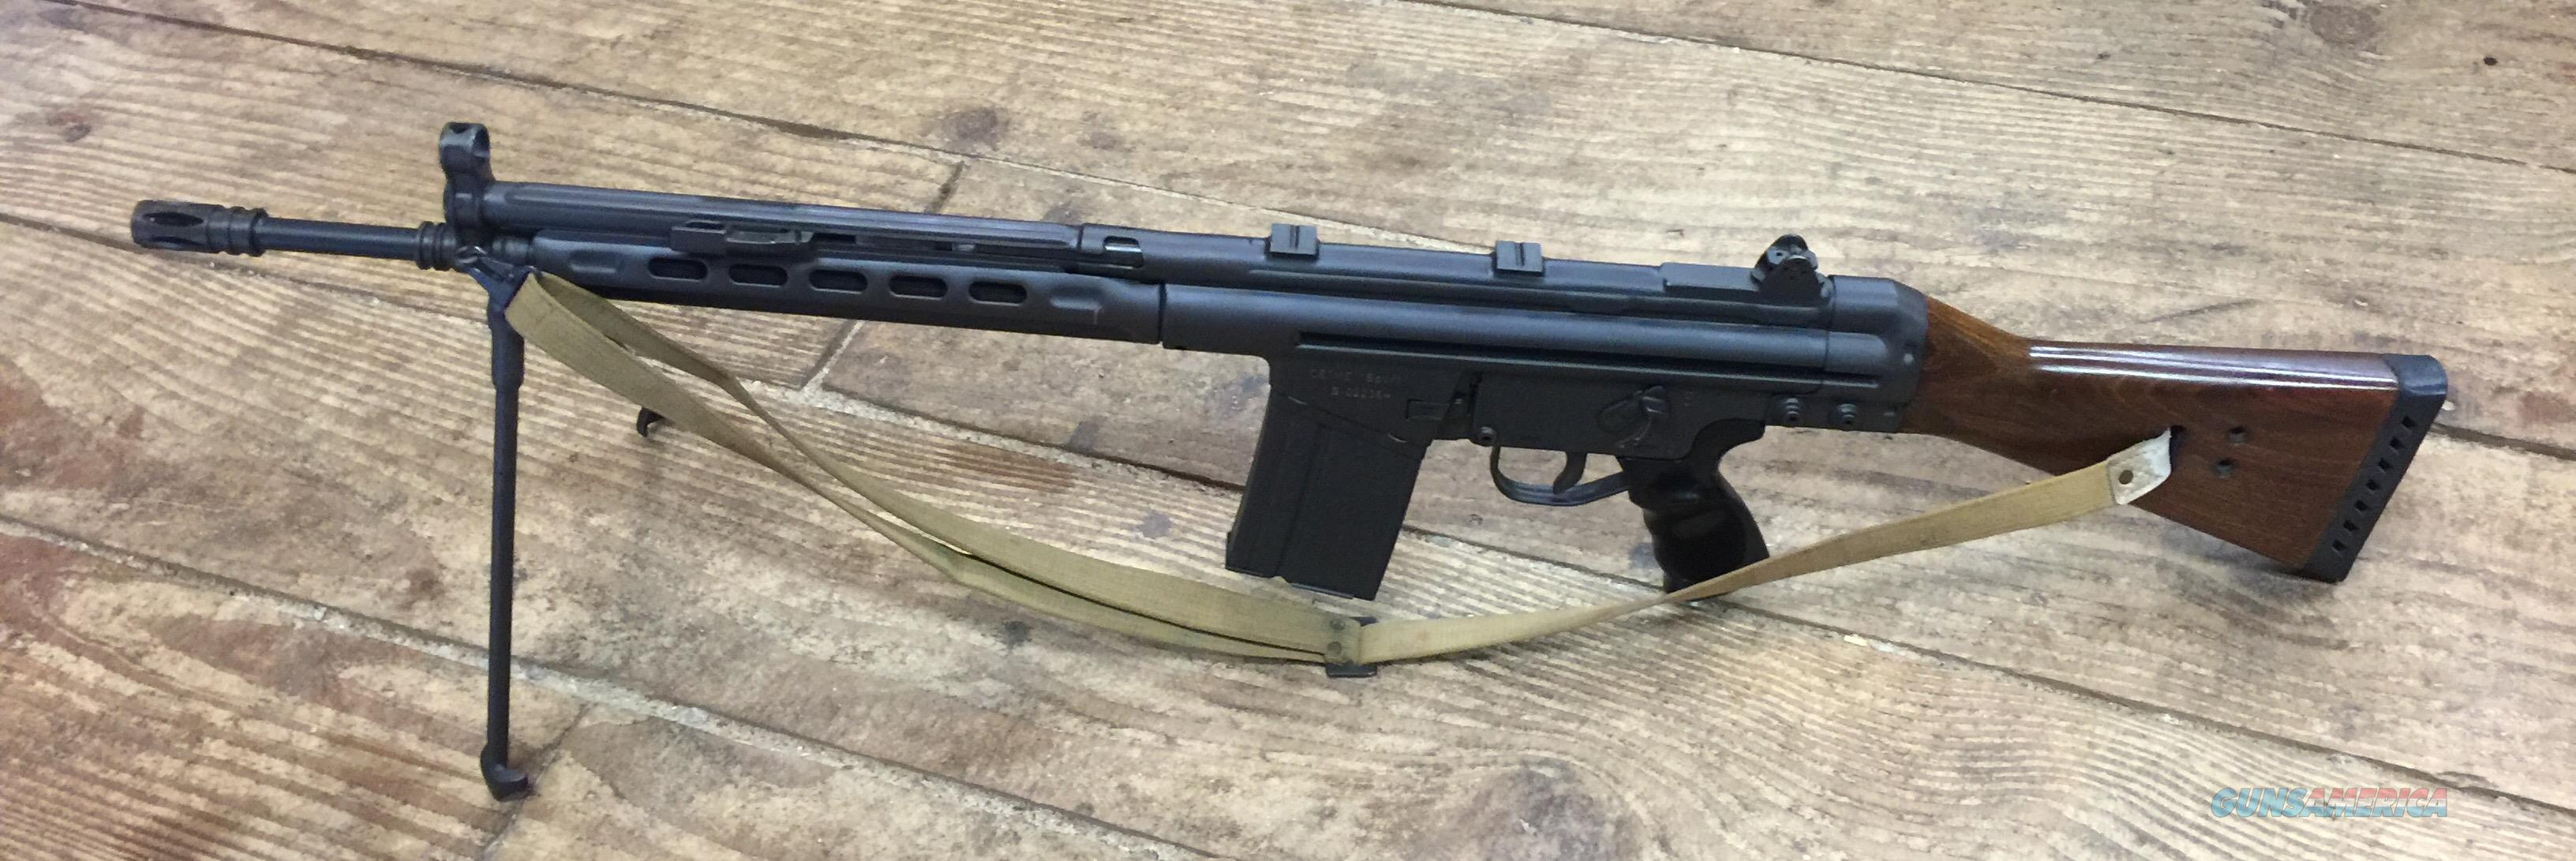 "CETME   SPORTER     308       ""RARE""  MADE BY  MARS  EQUIPMENT  Guns > Rifles > CETME Rifles"